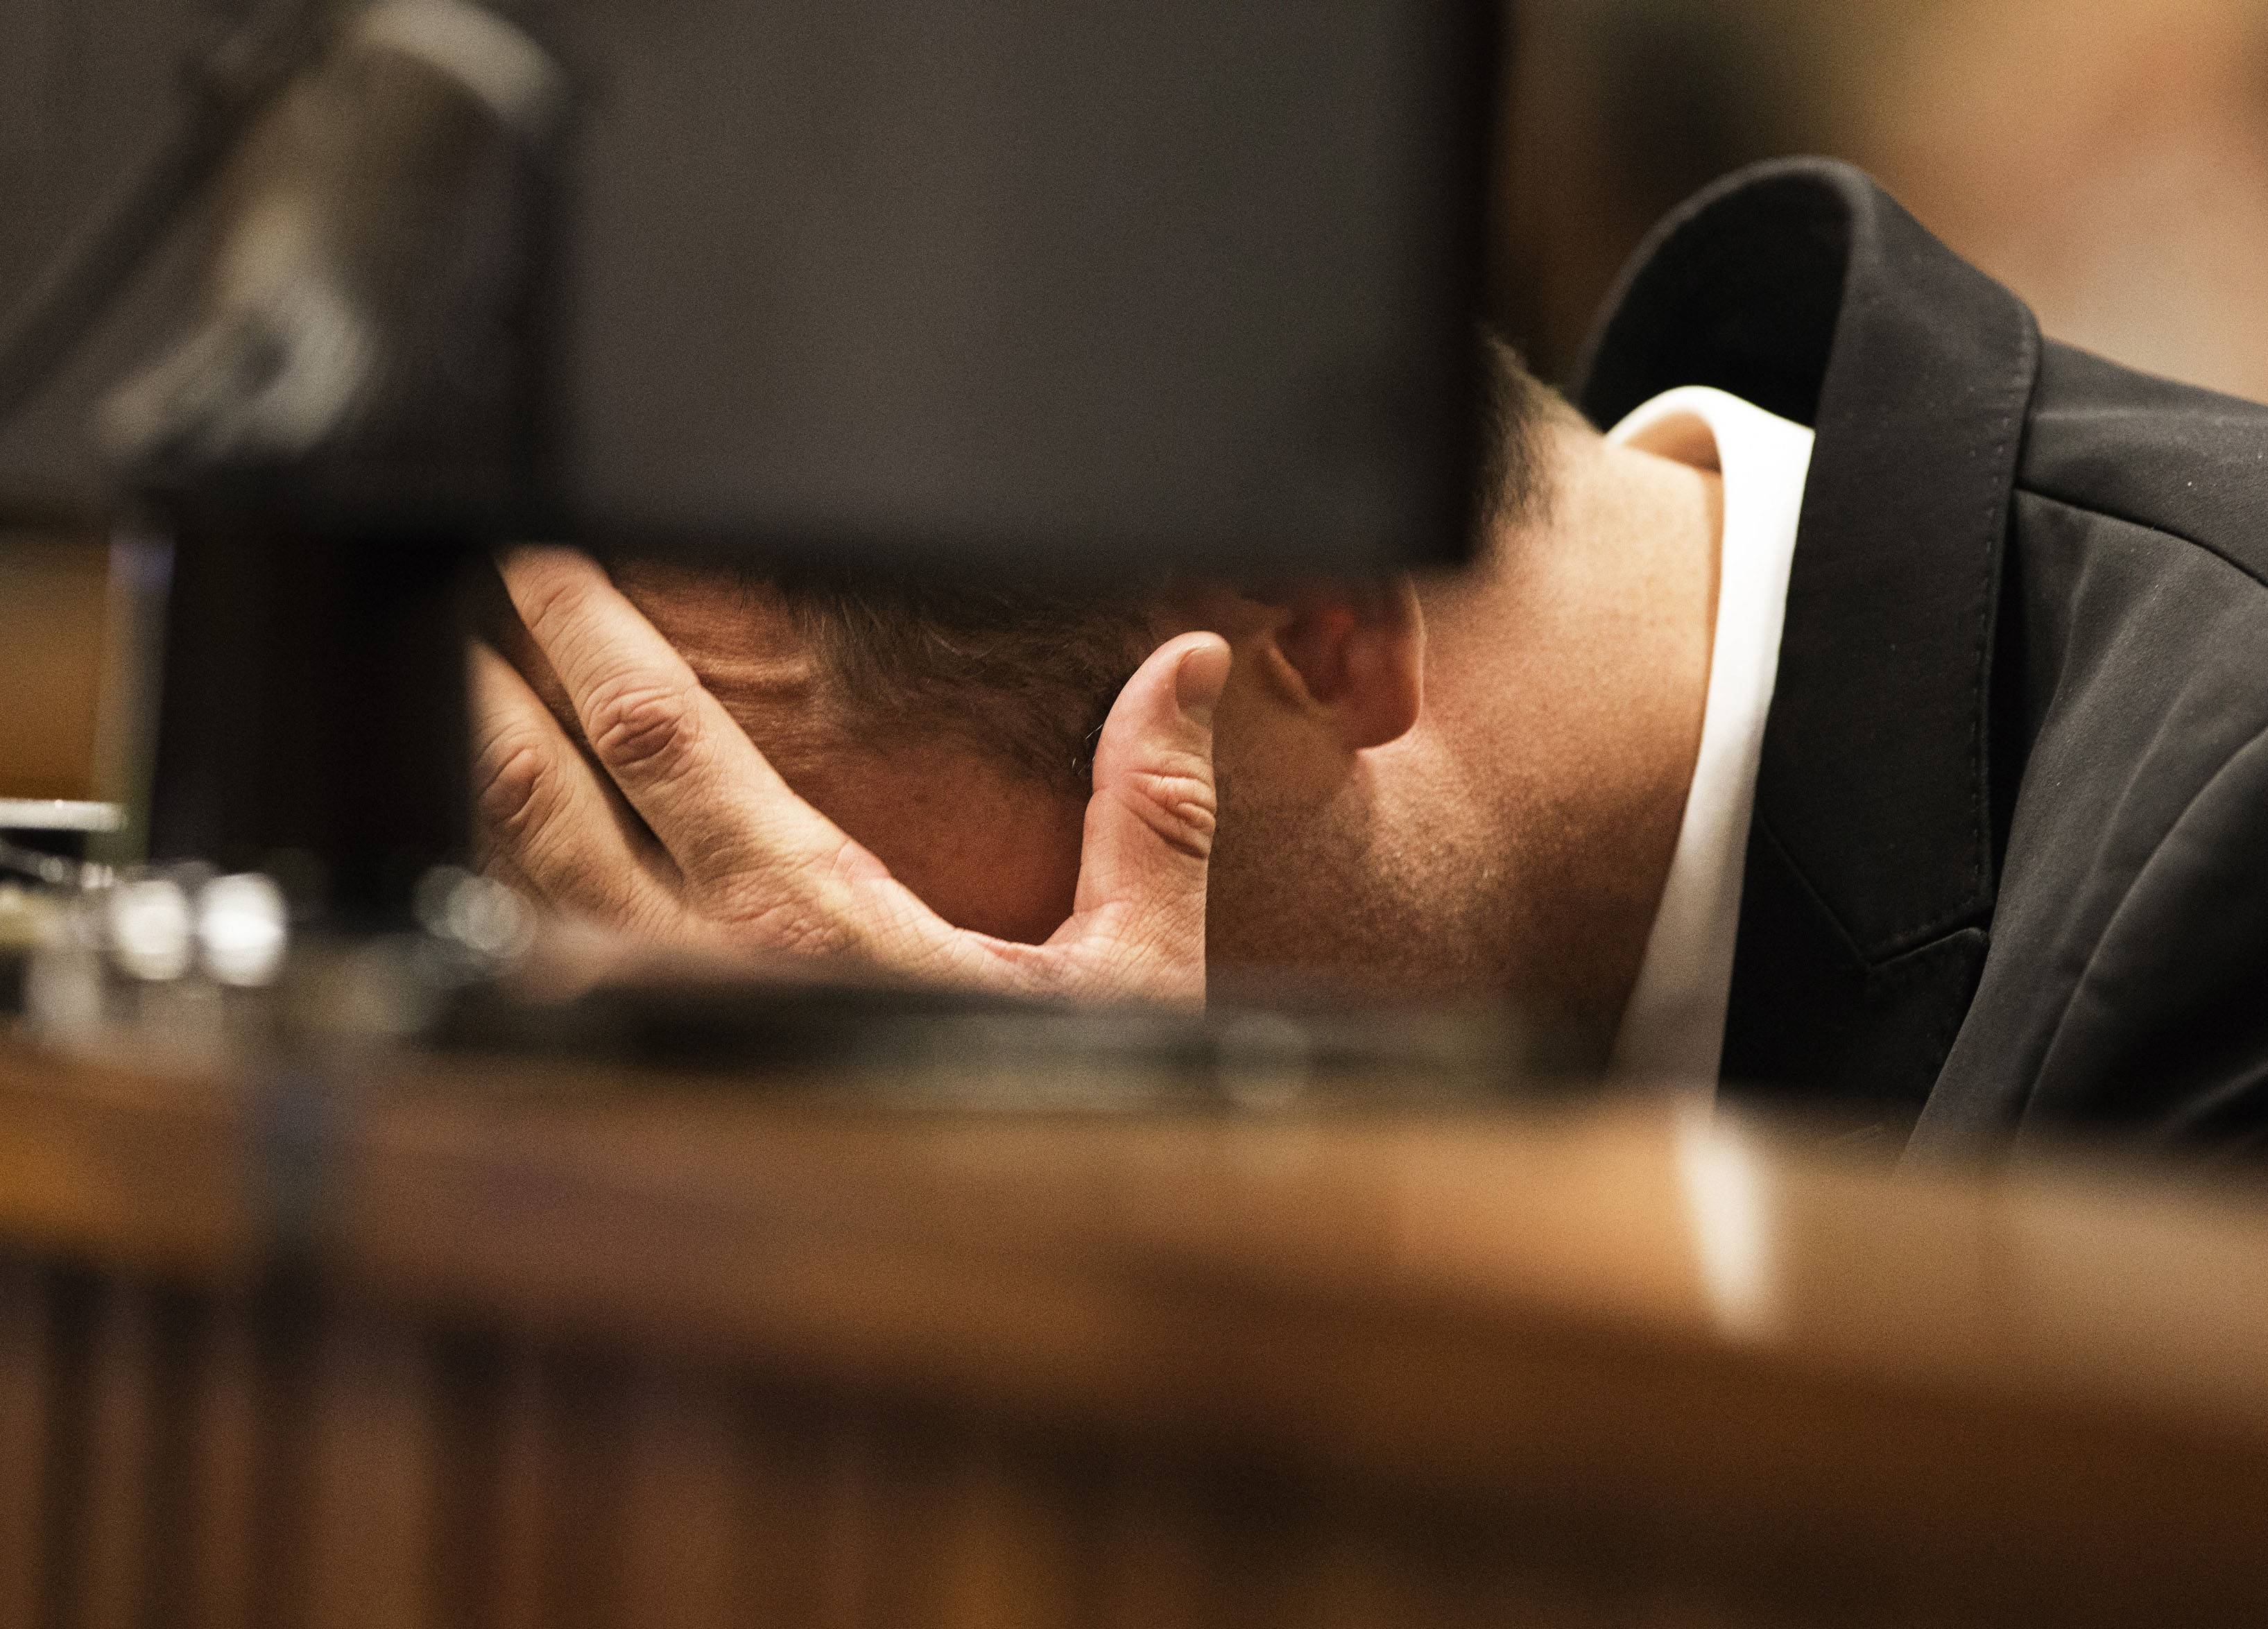 Oscar Pistorius, puts his hands to his head while listening to evidence from a witness speaking about the morning of the shooting of his girlfriend Reeva Steenkamp, in court on the fourth day of his trial at the high court in Pretoria, South Africa, Thursday.